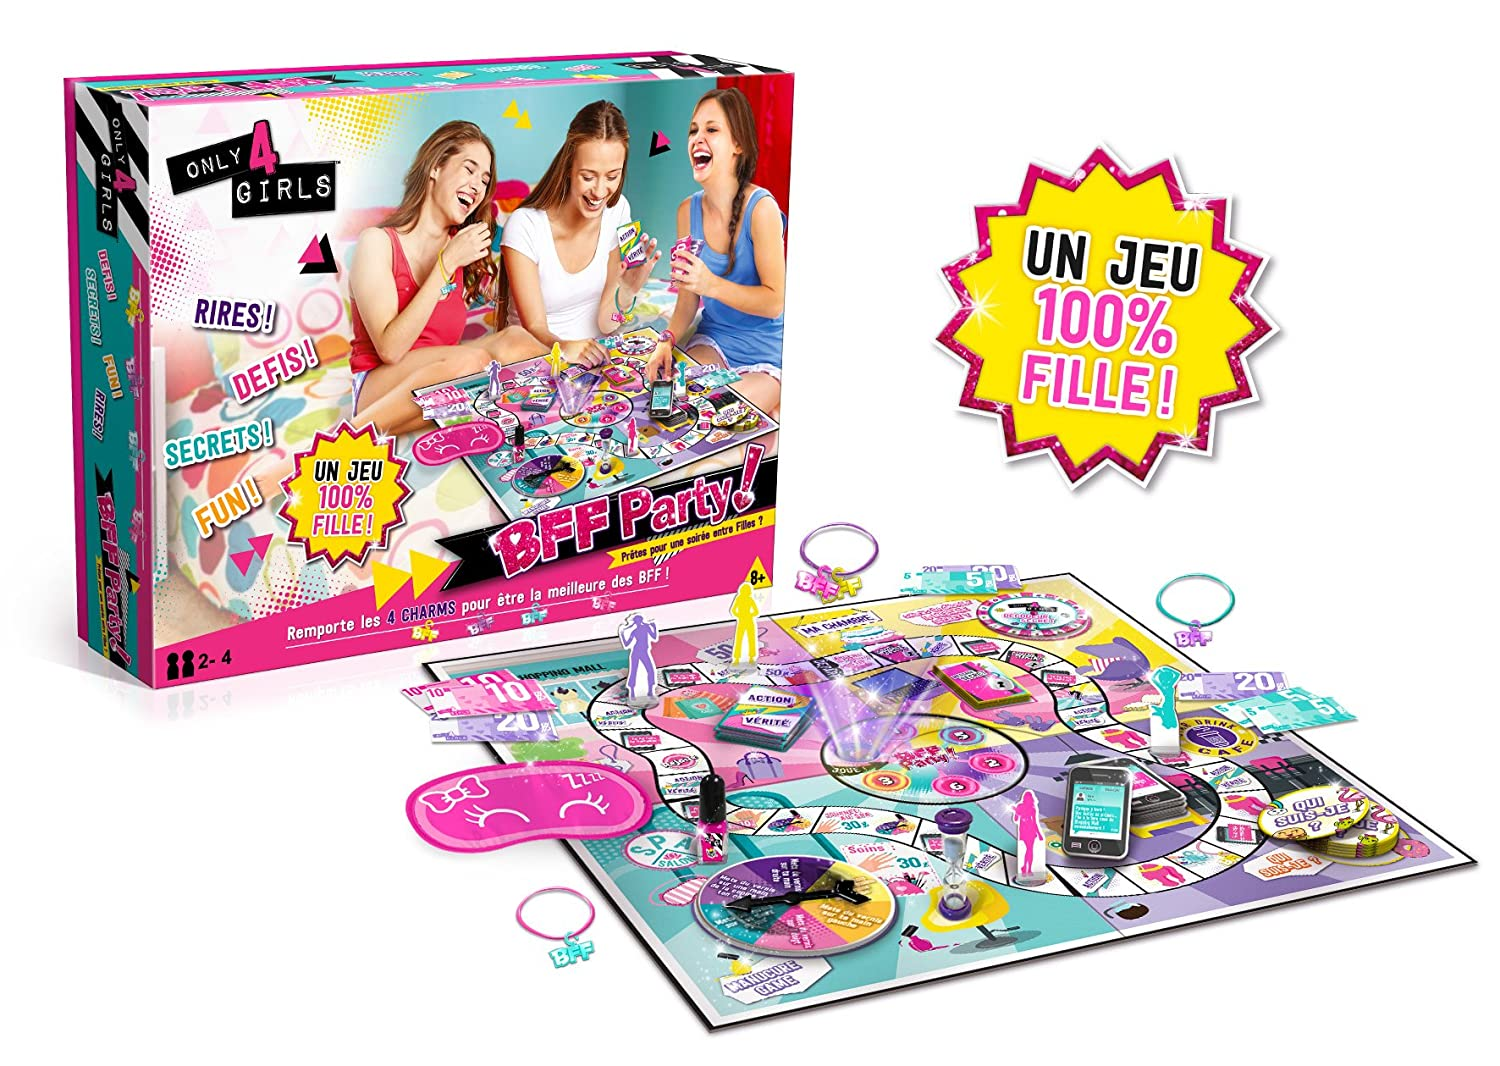 Only For Girls Bff Party CT28598 Canal Toys Loisir Créatif